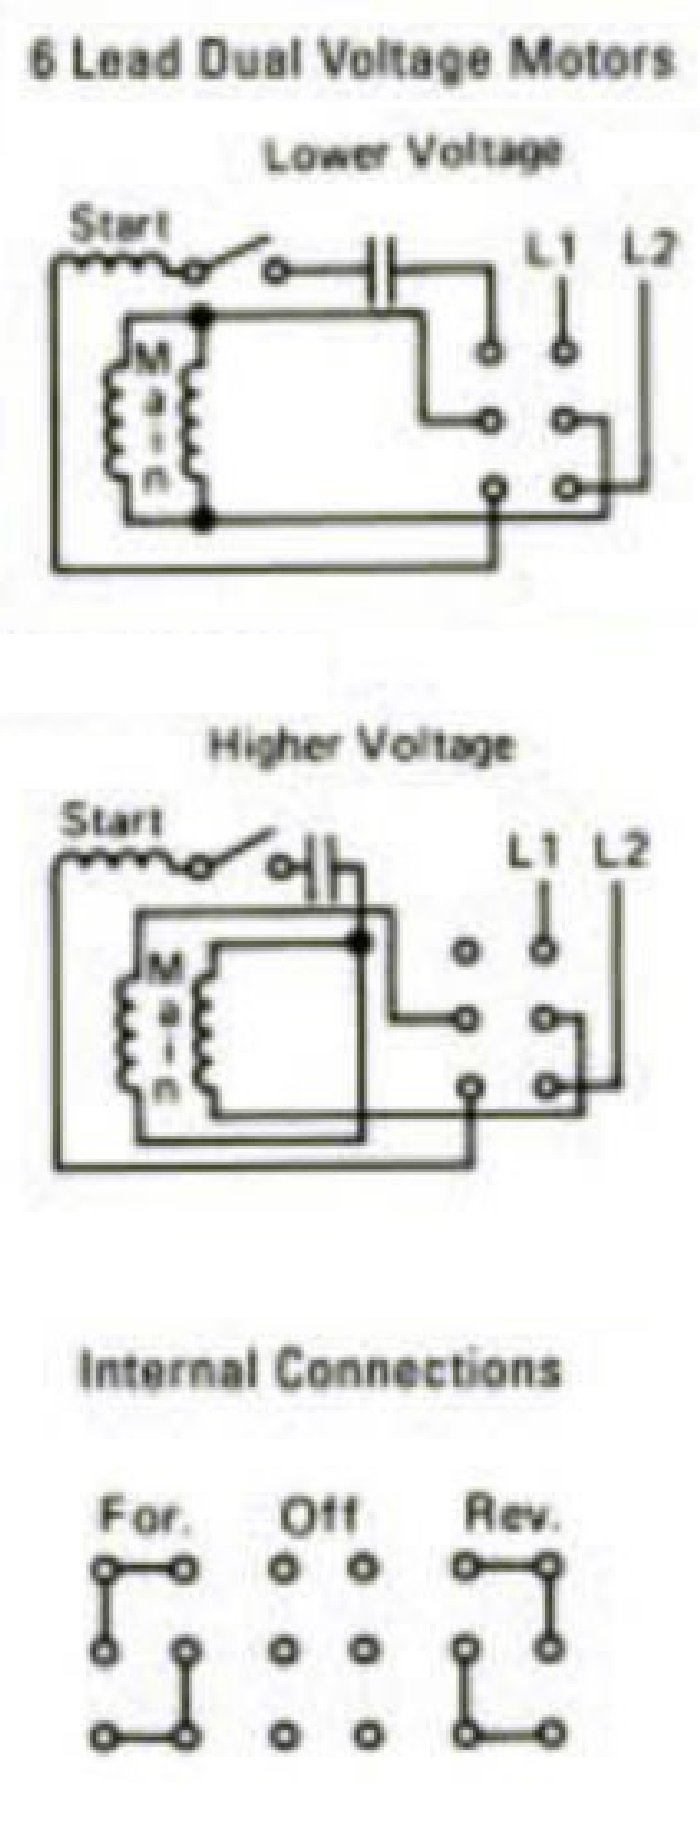 Lift Motor Diagram Wiring Schemes Station Diagrams Boat And Switch List Of Schematic 2000 Gmc Radio